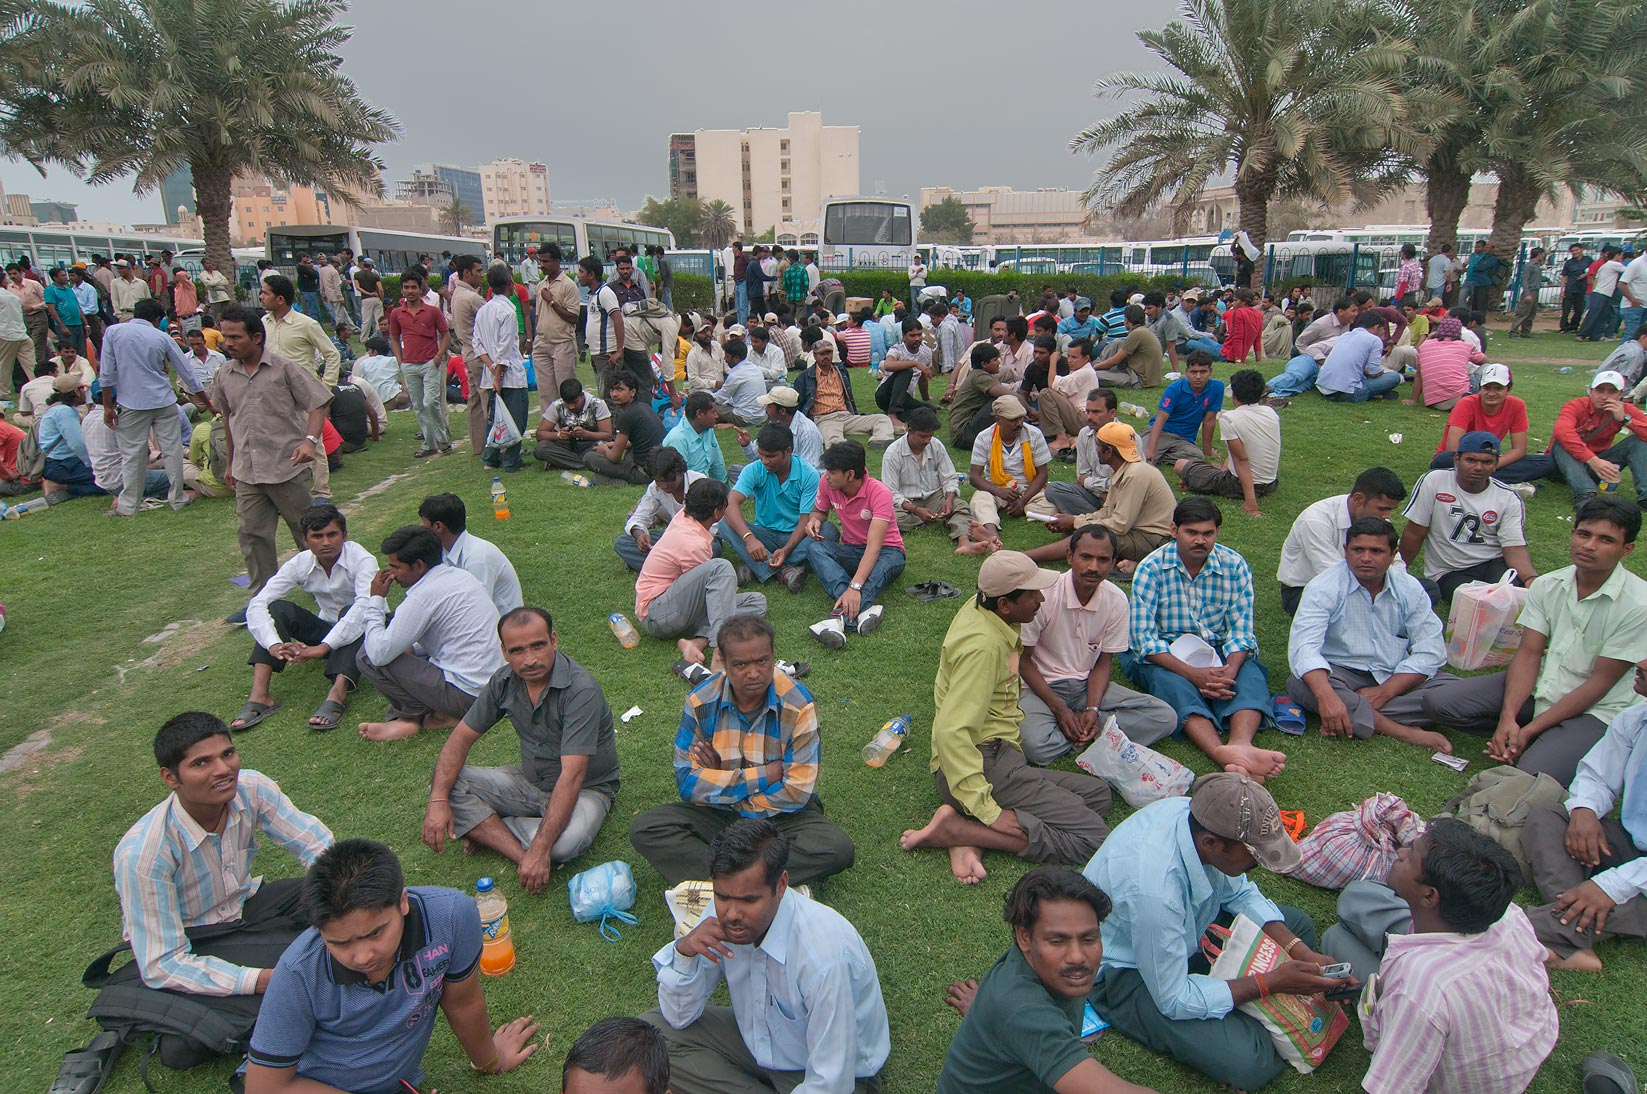 Crowds of migrant workers on a lawn on Friday...Bus Station Al Ghanim. Doha, Qatar